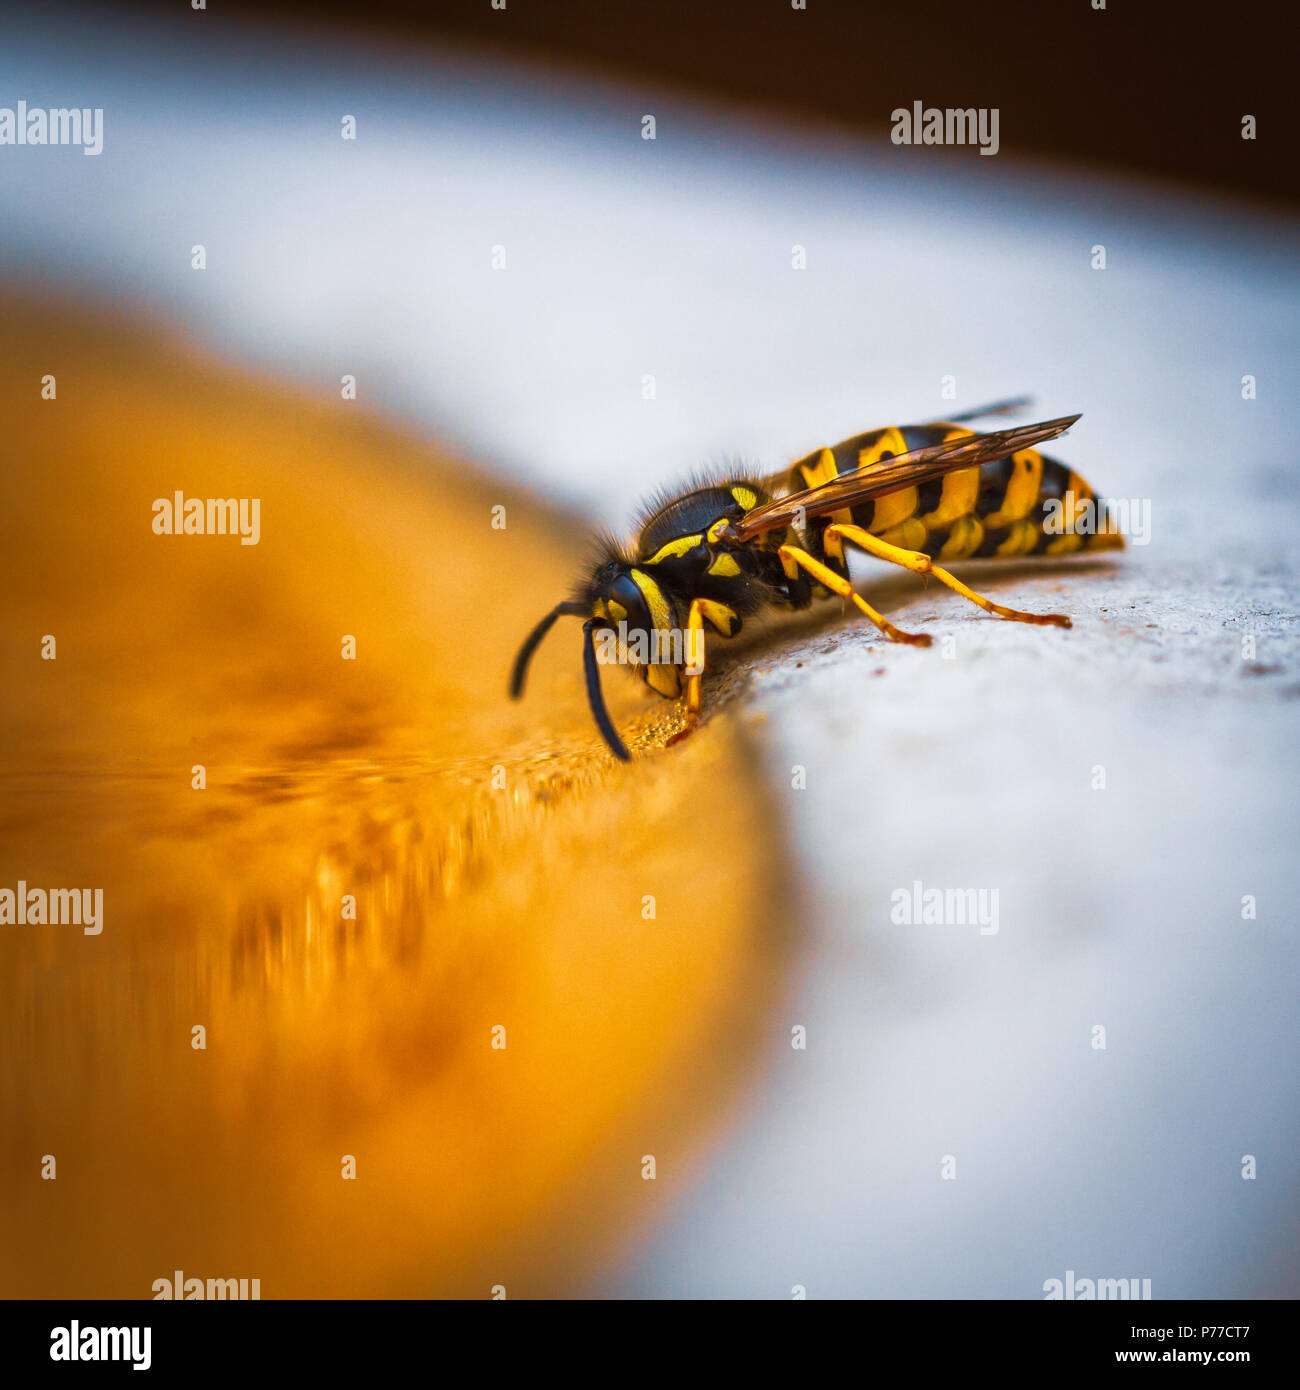 Wasp taking a drink in a bird bath - Stock Image